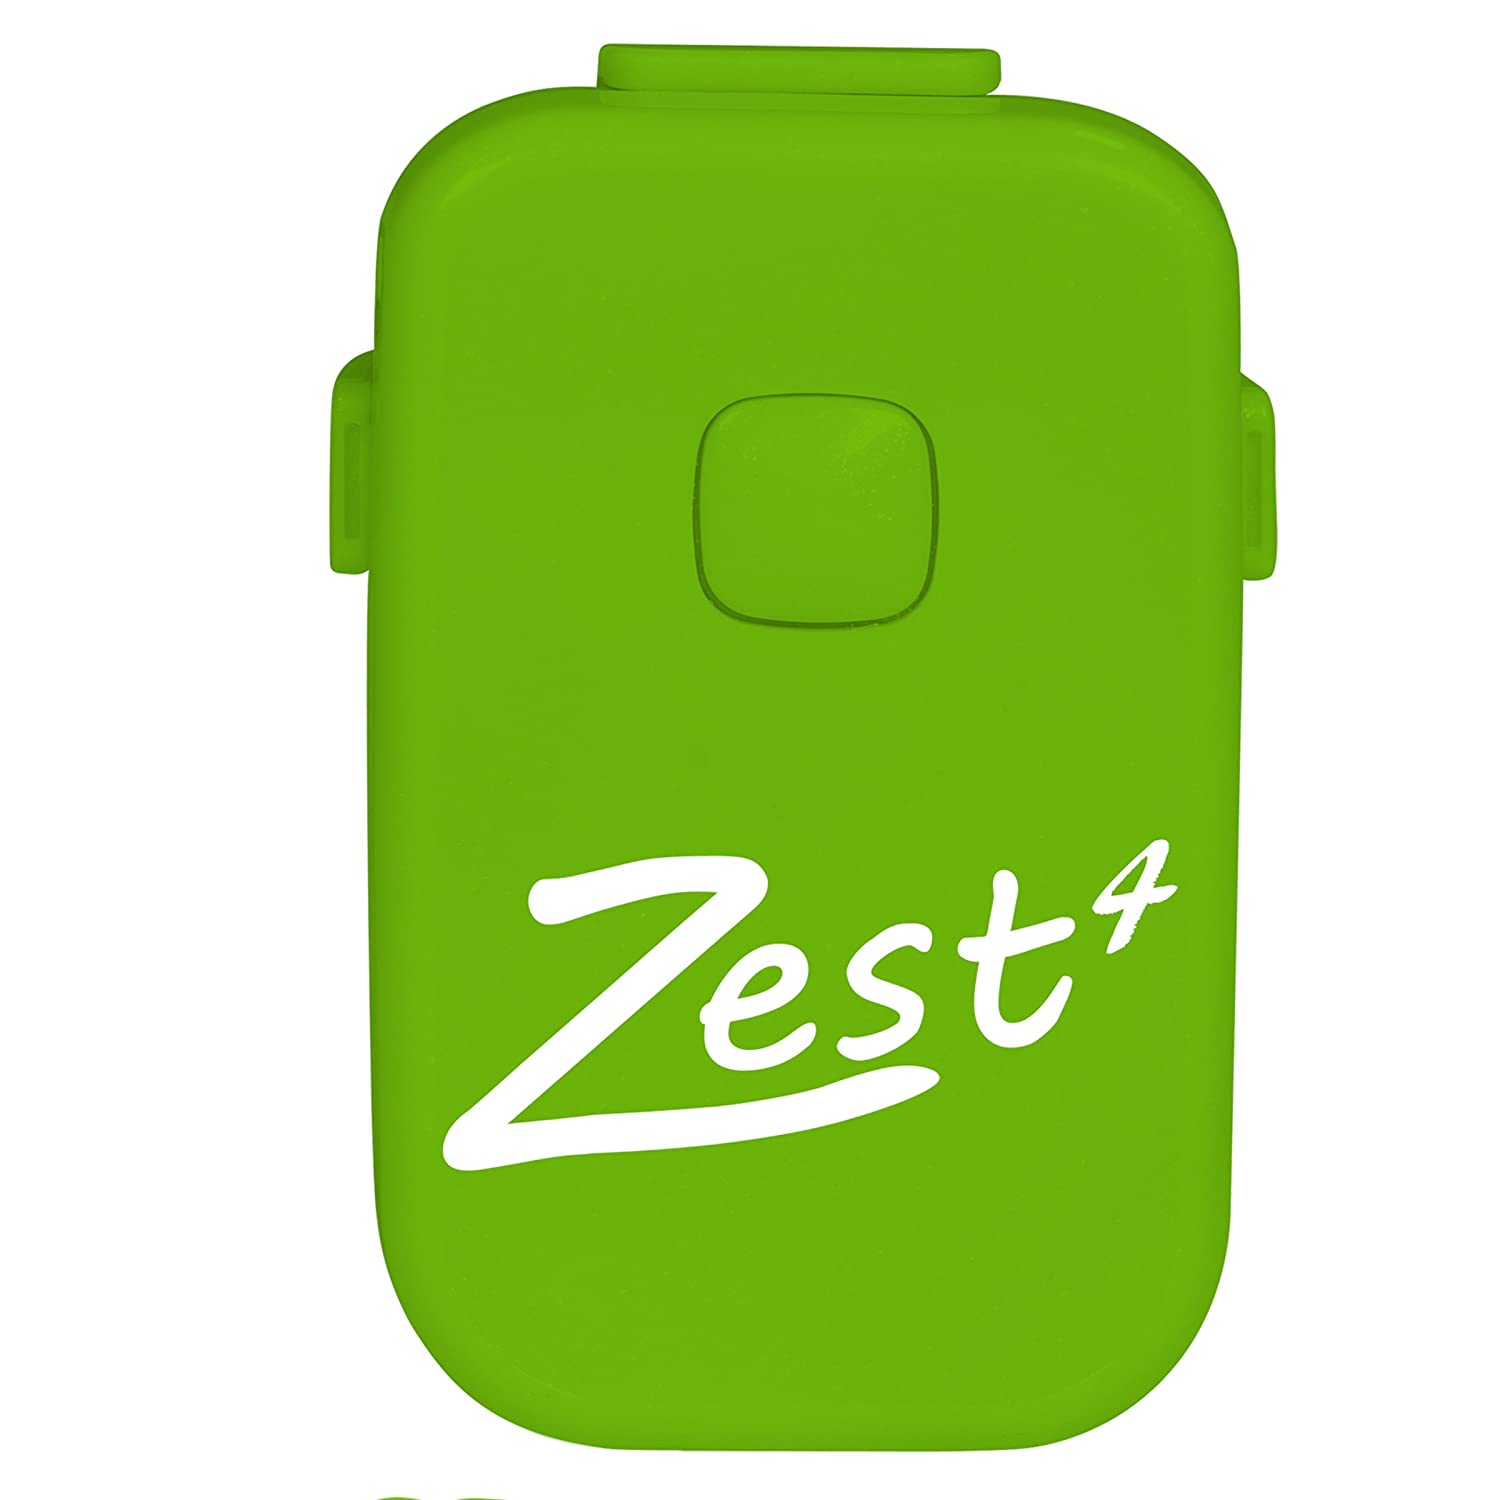 Zest 4 Bedwetting Alarm (Enuresis Alarm) with 8 Tones and Strong Vibration to Stop Bedwetting in Boys, Girls and Deep Sleepers